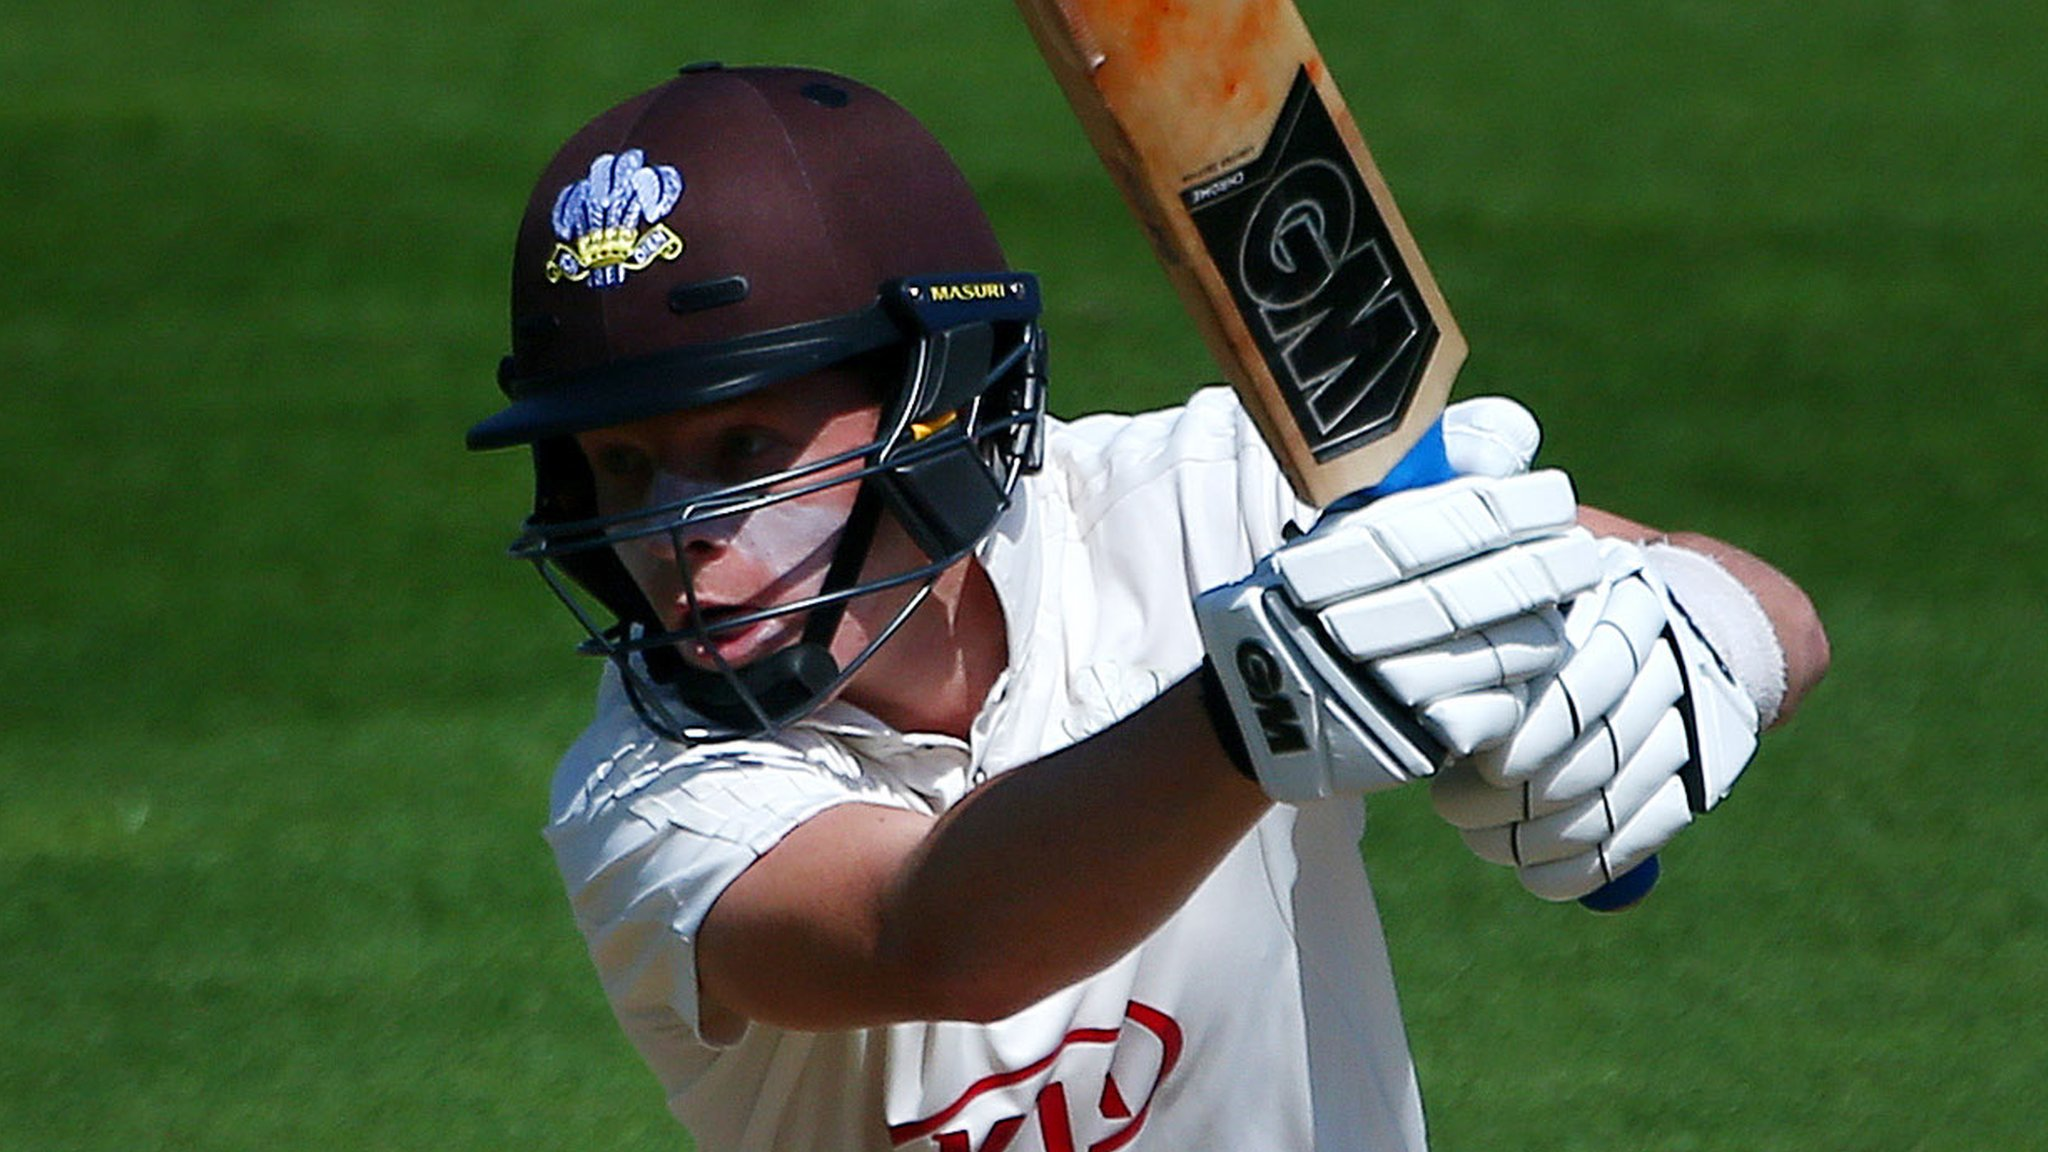 County Championship: Ollie Pope scores 145 as Surrey dominate Hampshire | BBC